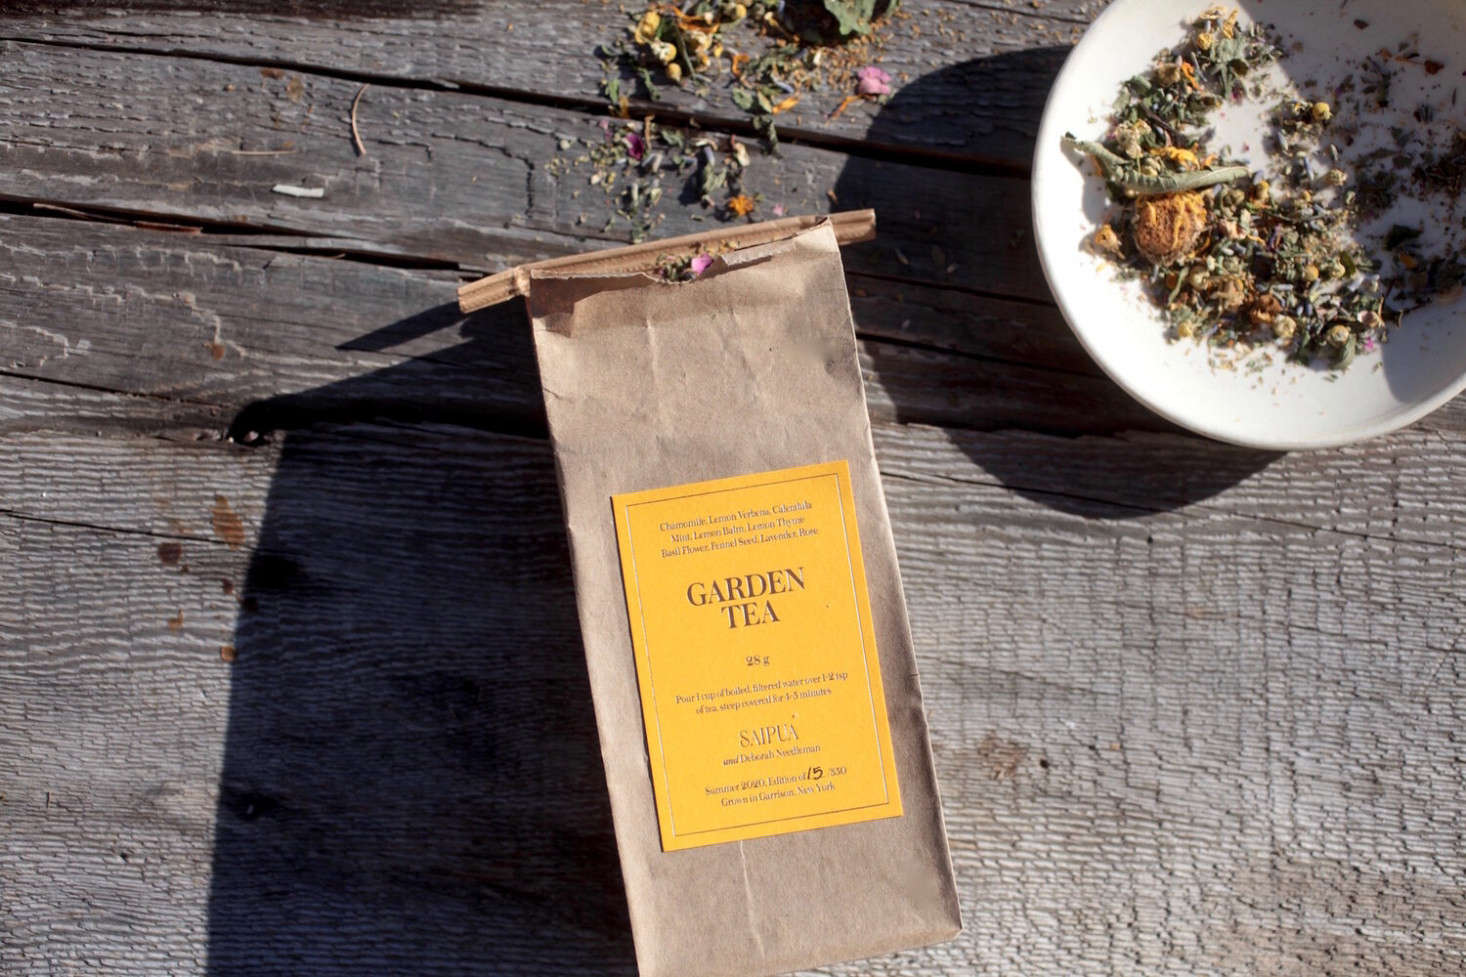 At the intersection of gardening and tea drinking is Garden Tea: The tea &#8